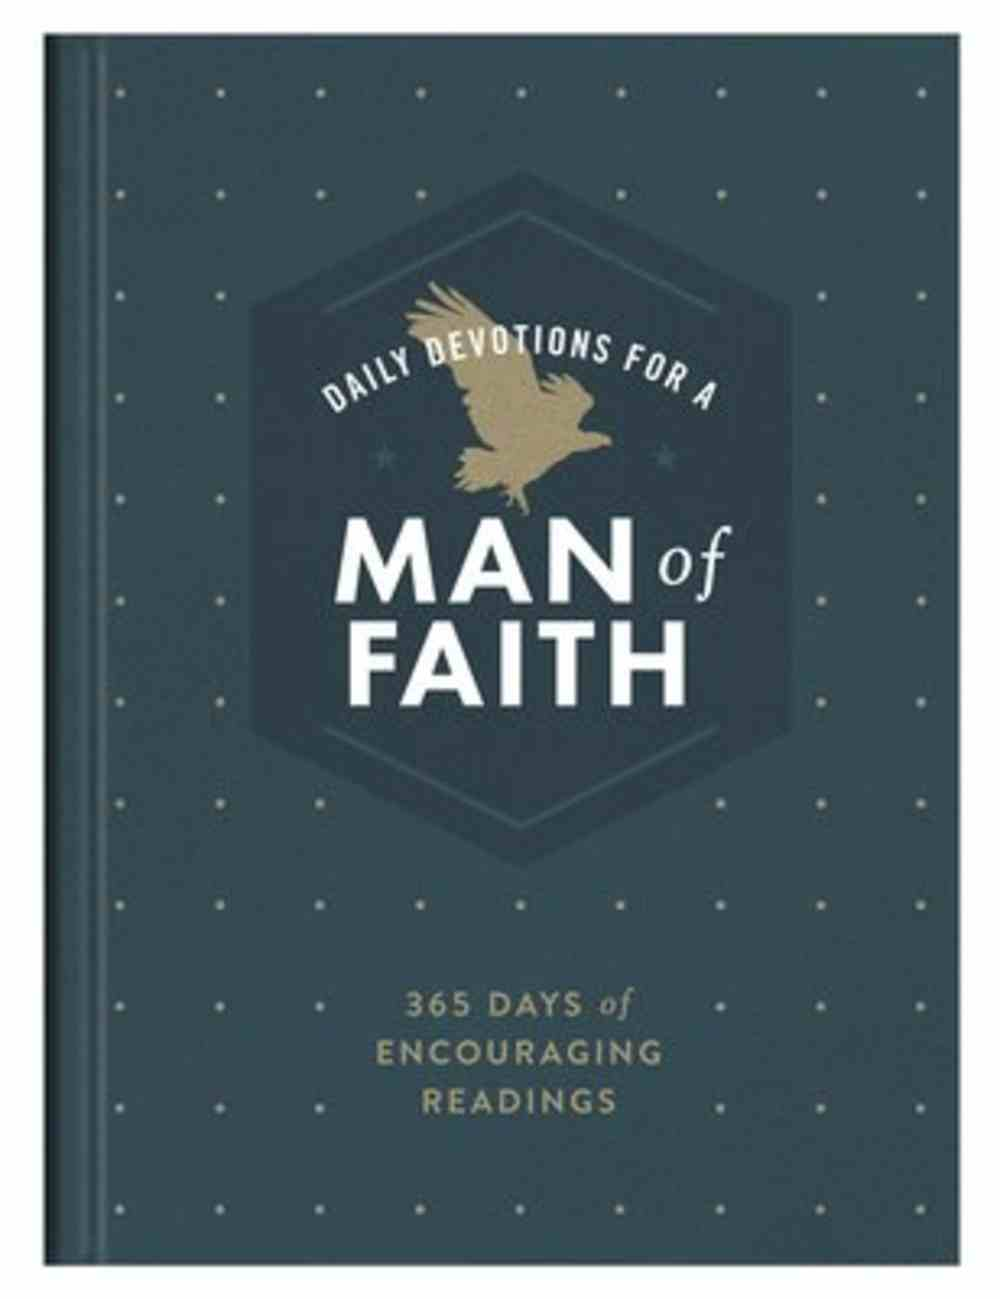 Daily Devotions For a Man of Faith: 365 Days of Encouraging Readings Hardback